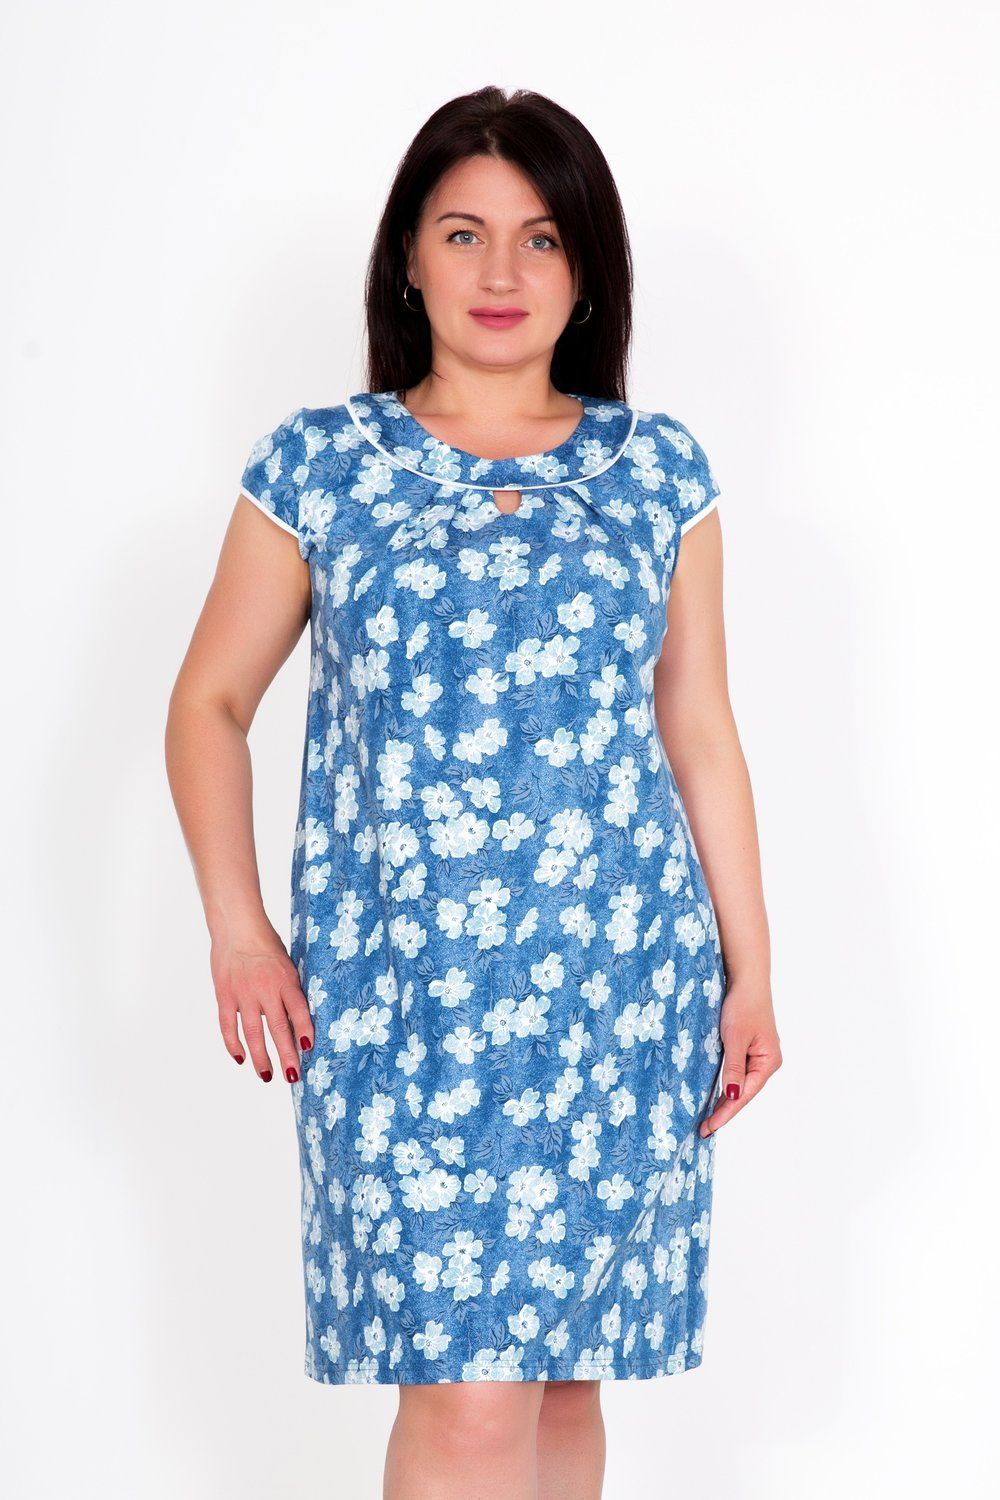 Lika Dress / Dress Jasmine S Art. 5292